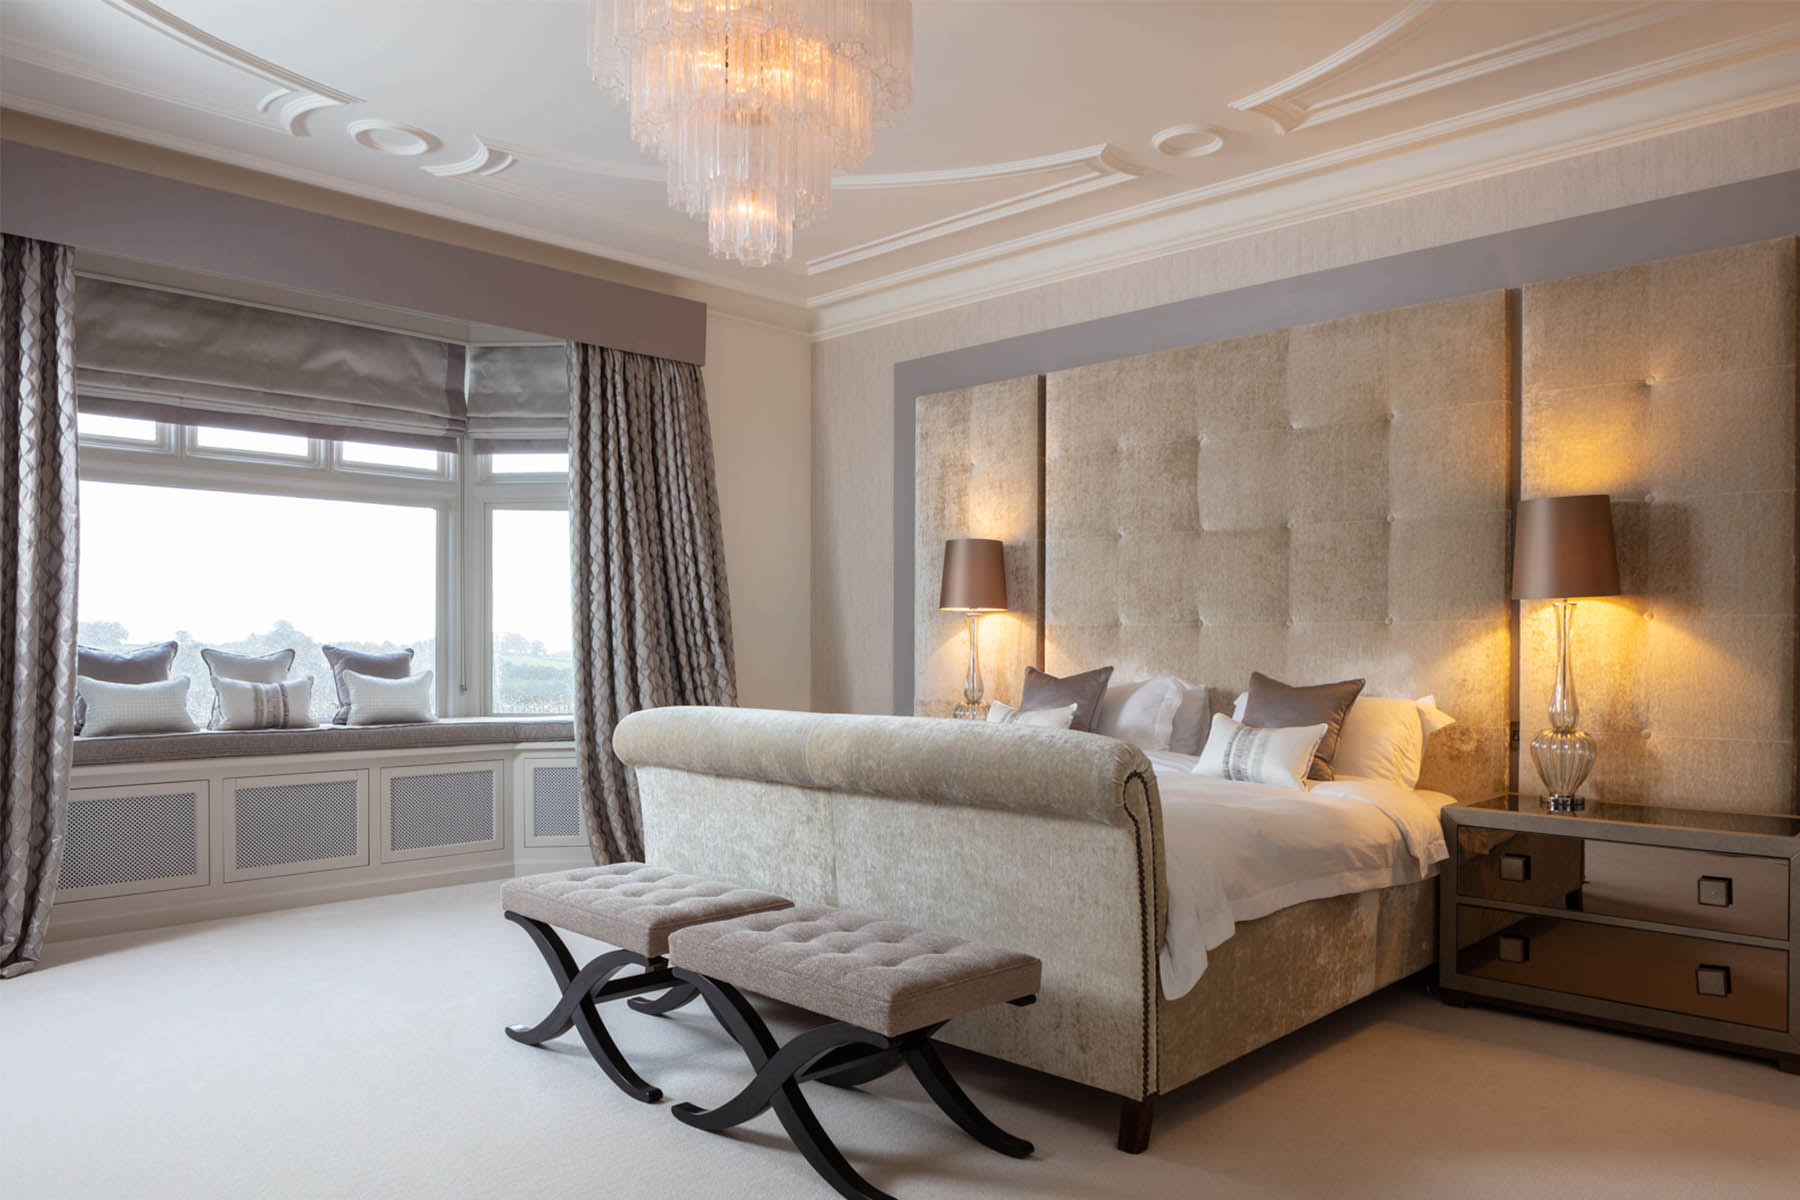 Image for When should I appoint an interior designer?